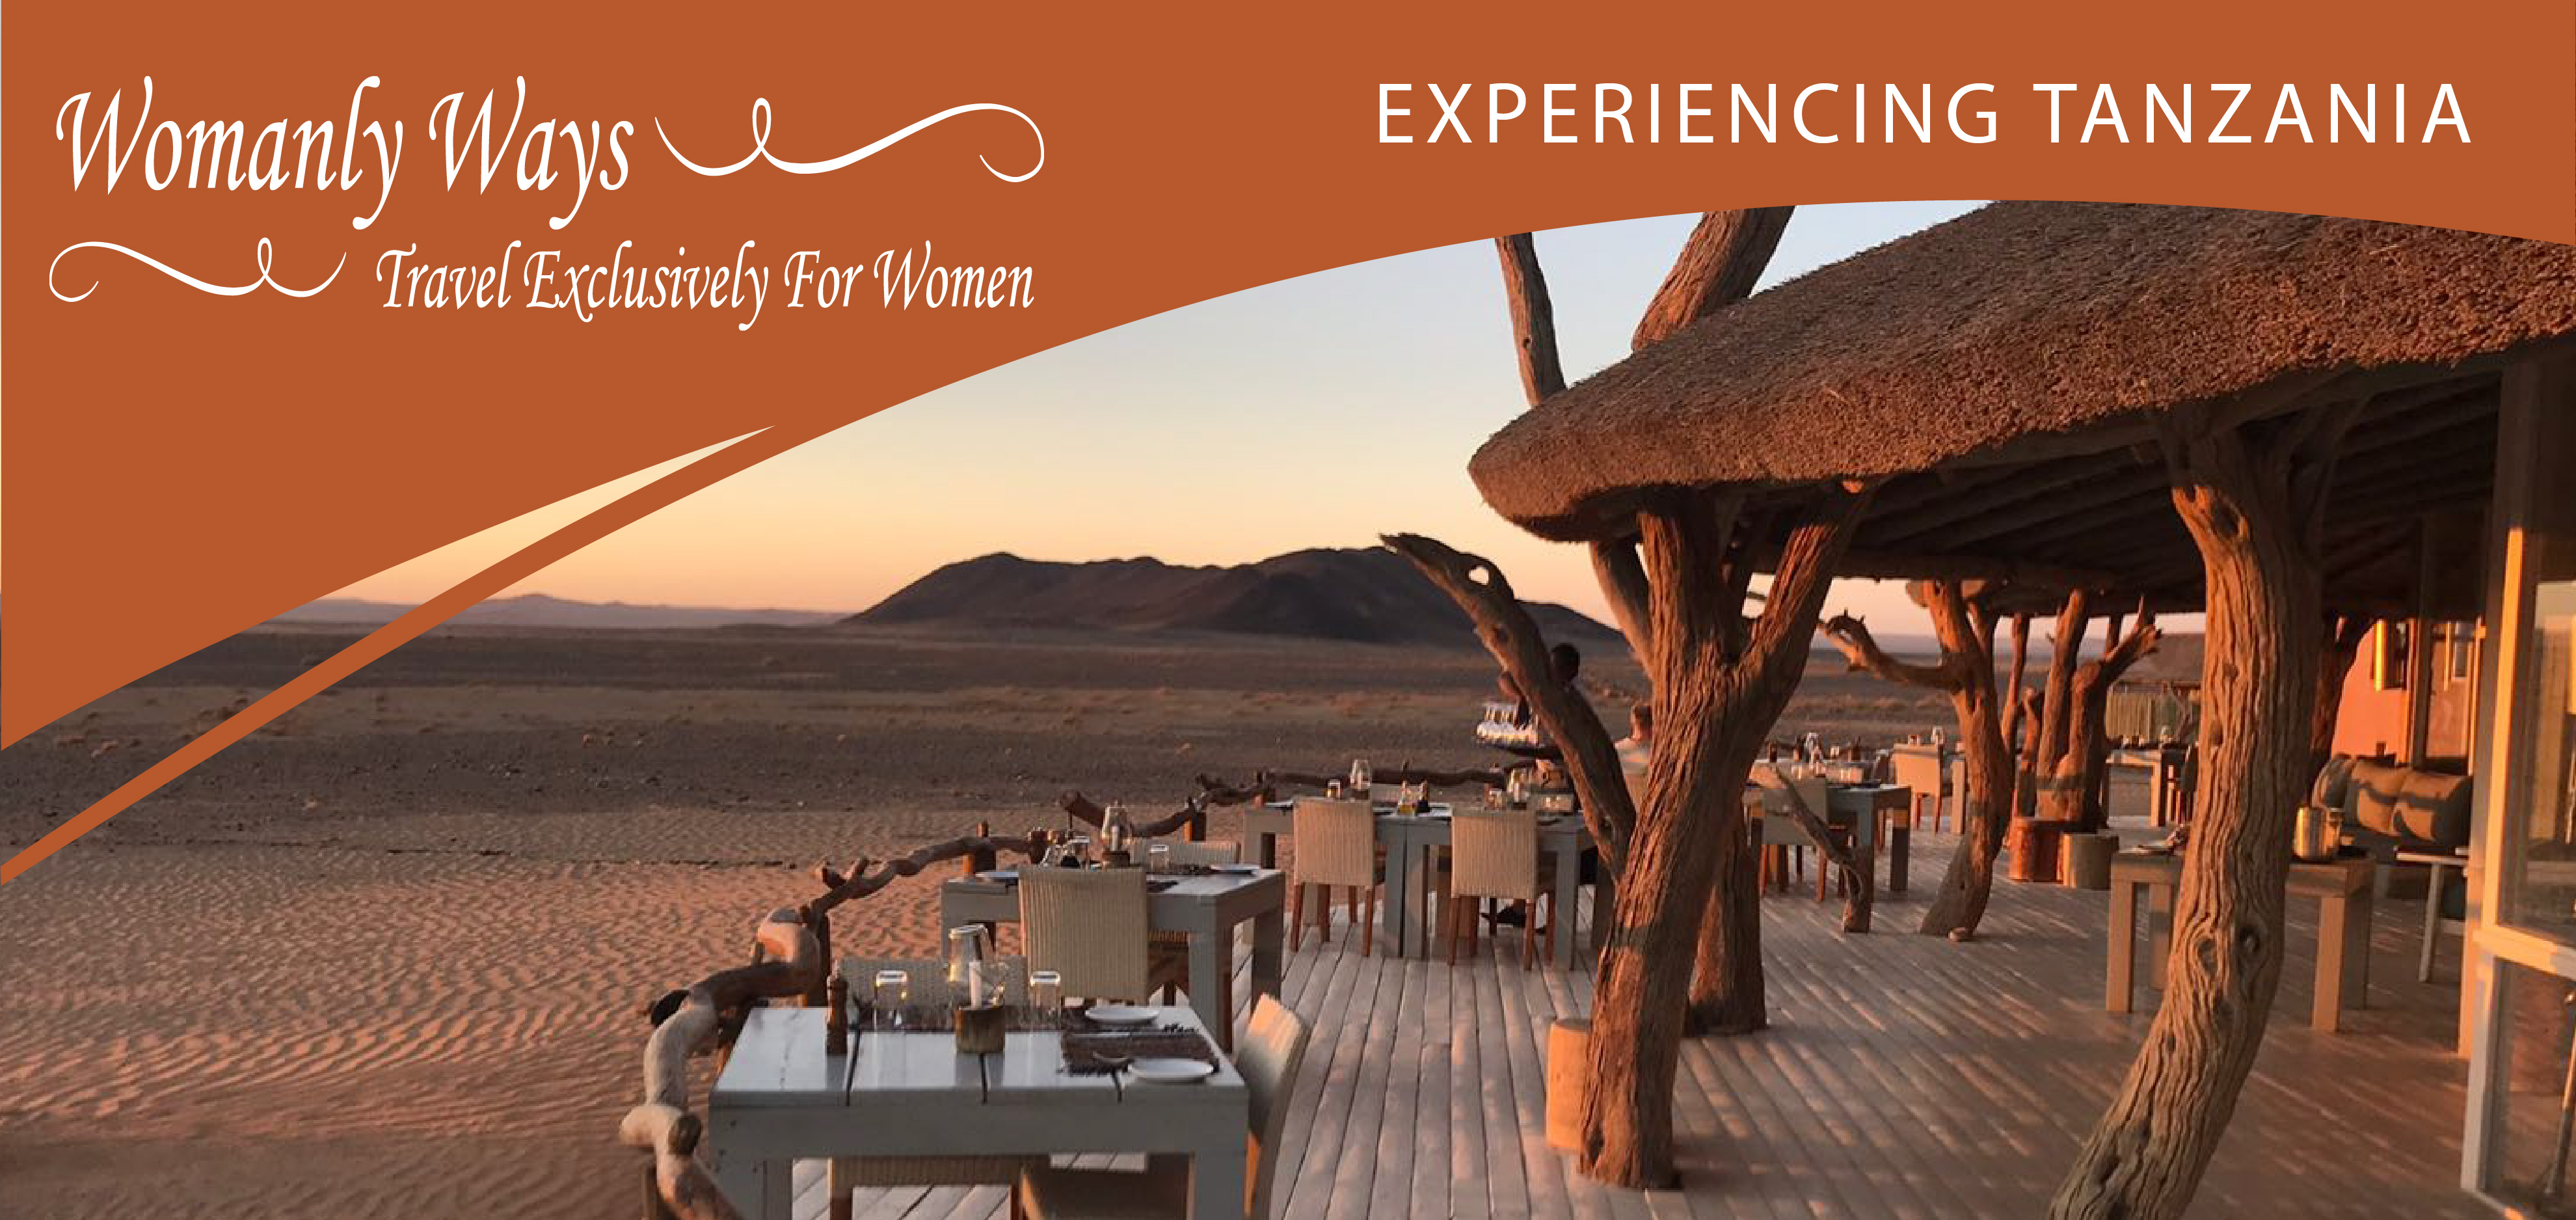 Womanly Ways: Experiencing Tanzania